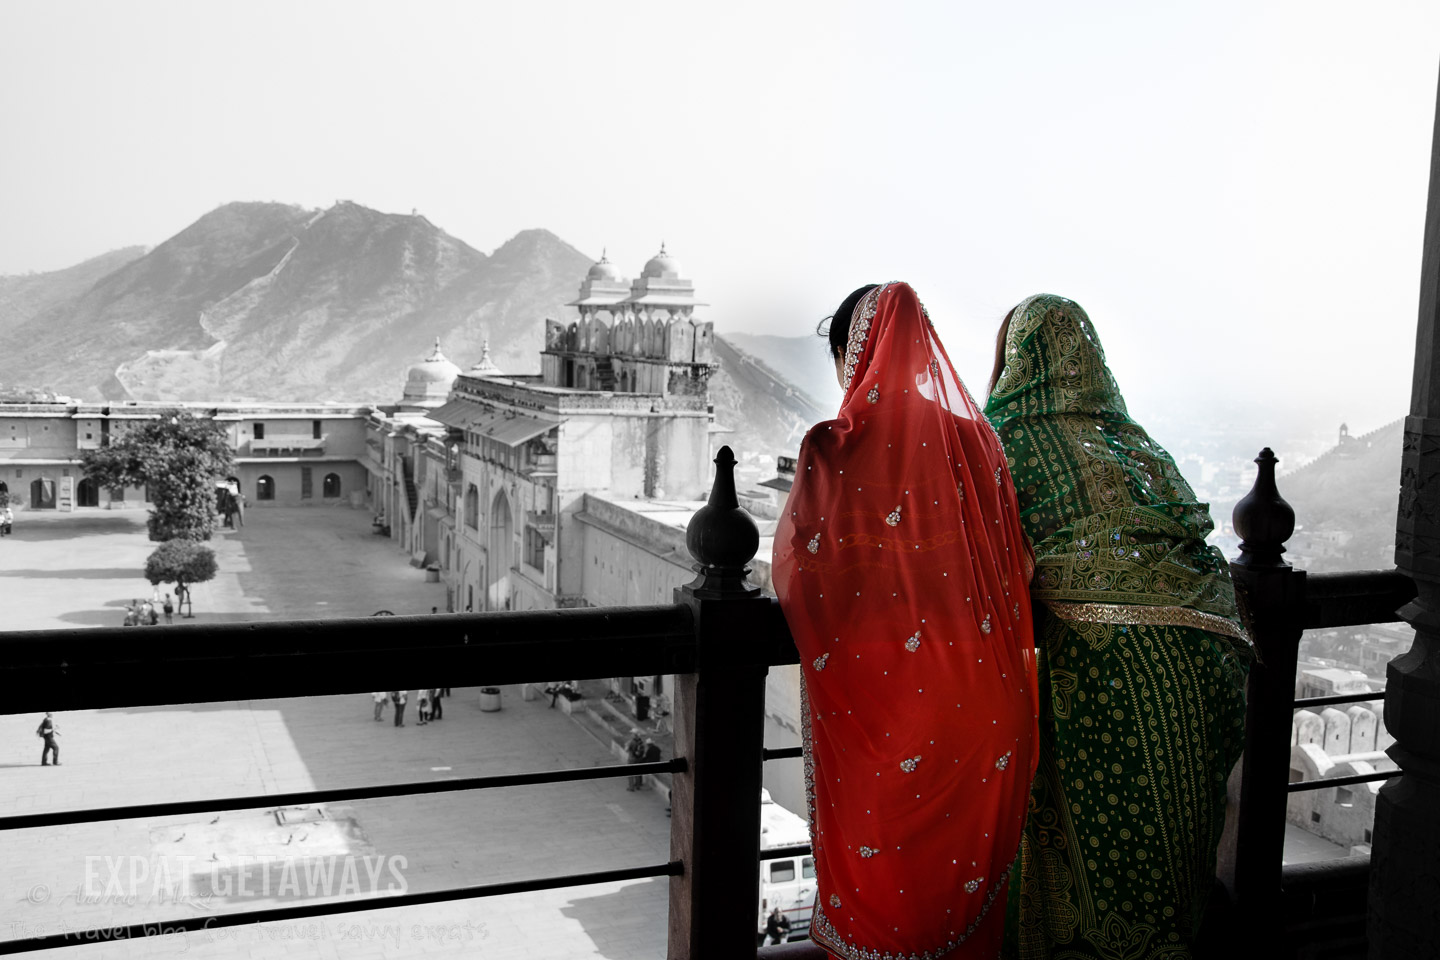 Women in Indian saris enjoying the view from the Amber Fort, Jaipur. Expat Getaways, 5 Nights Golden Triangle, Delhi, Jaipur & Agra, India.